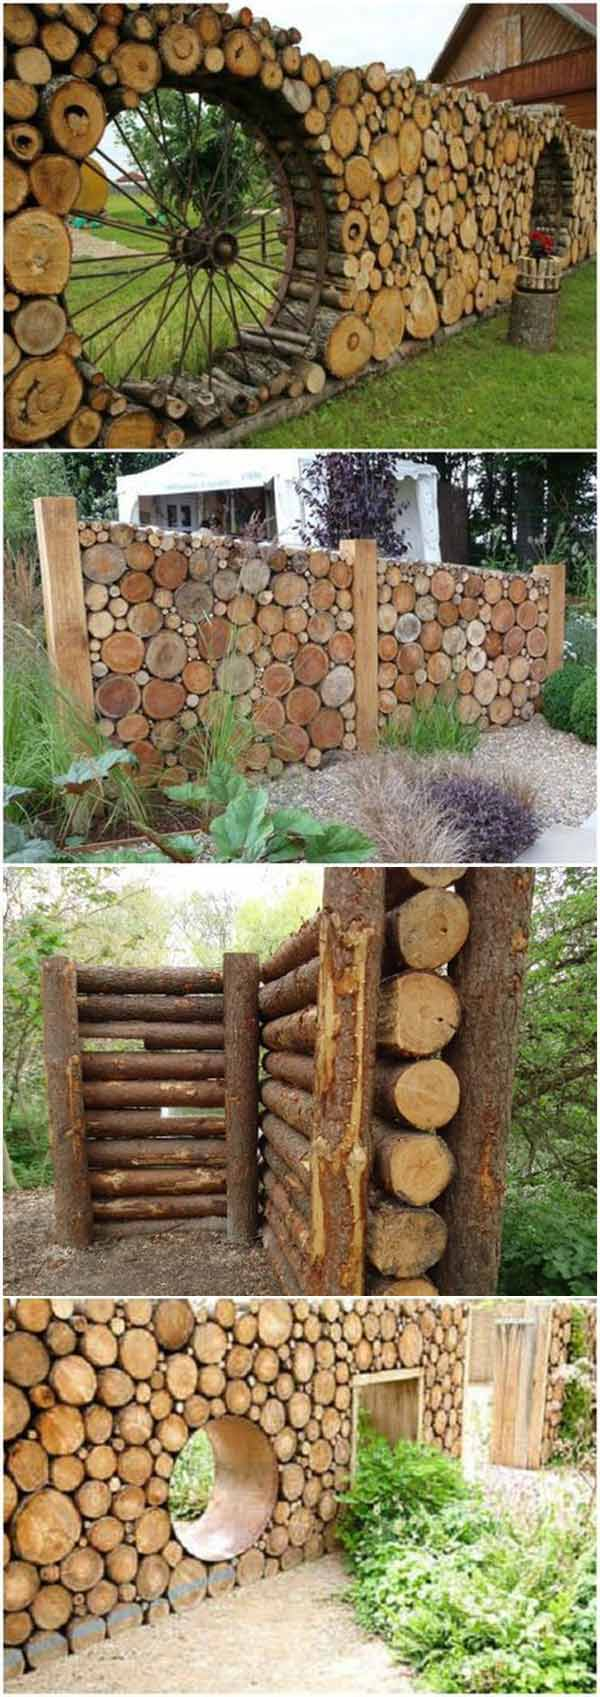 26 Surprisingly Amazing Fence Ideas You Never Thought Of Diy Interior Home Design